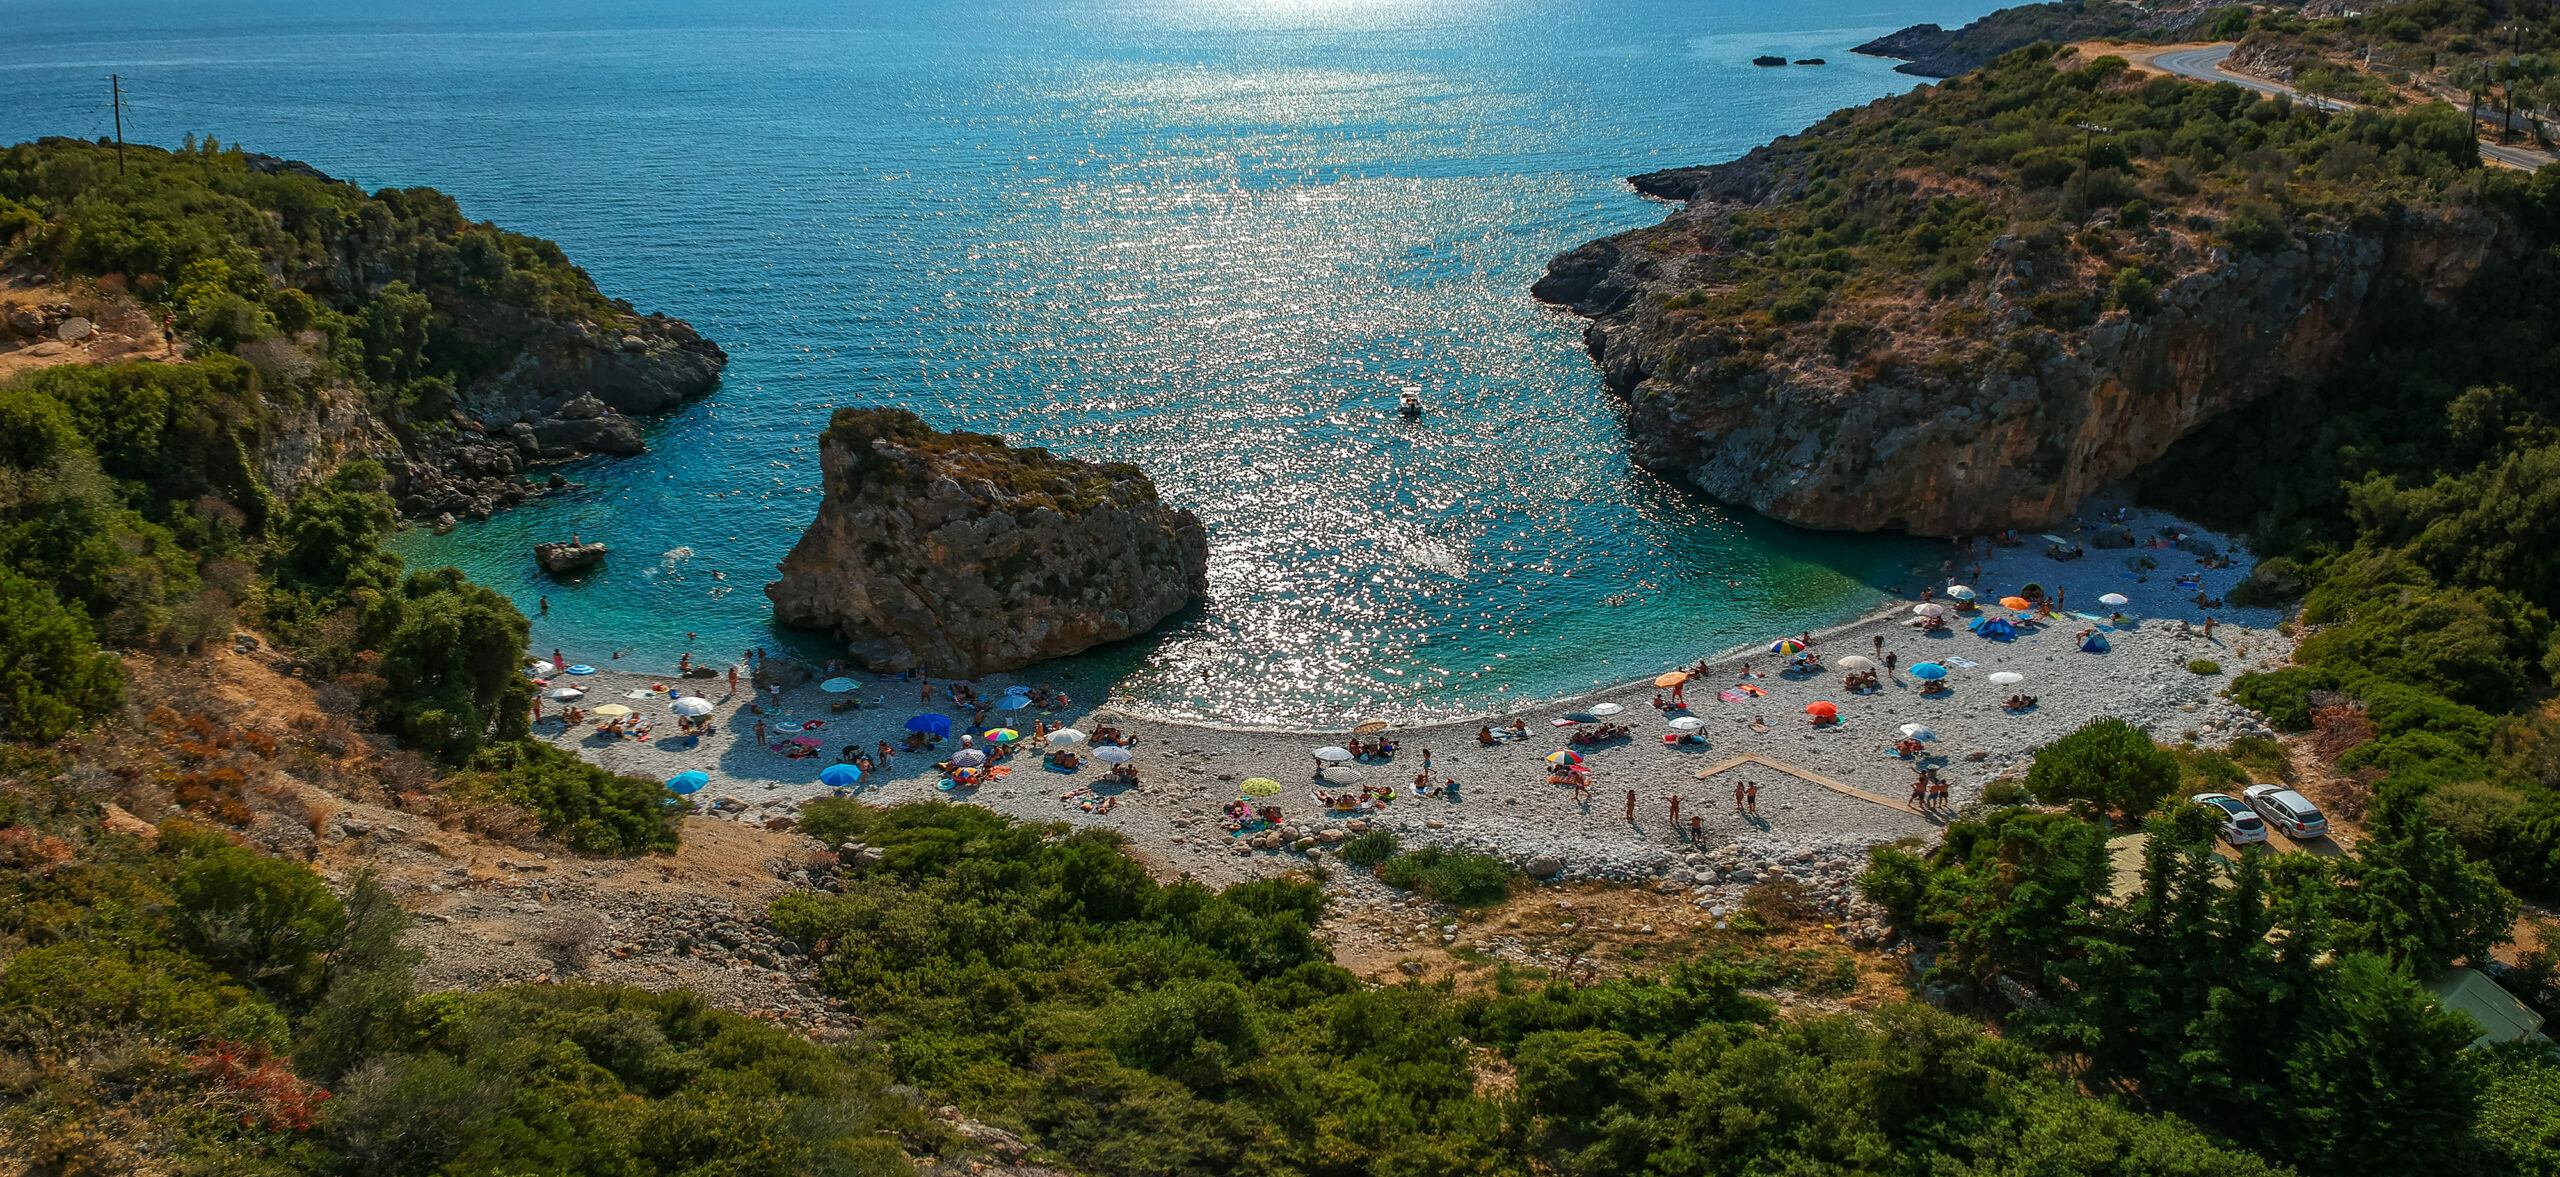 The legend behind the name of Foneas beach in the Peloponnese